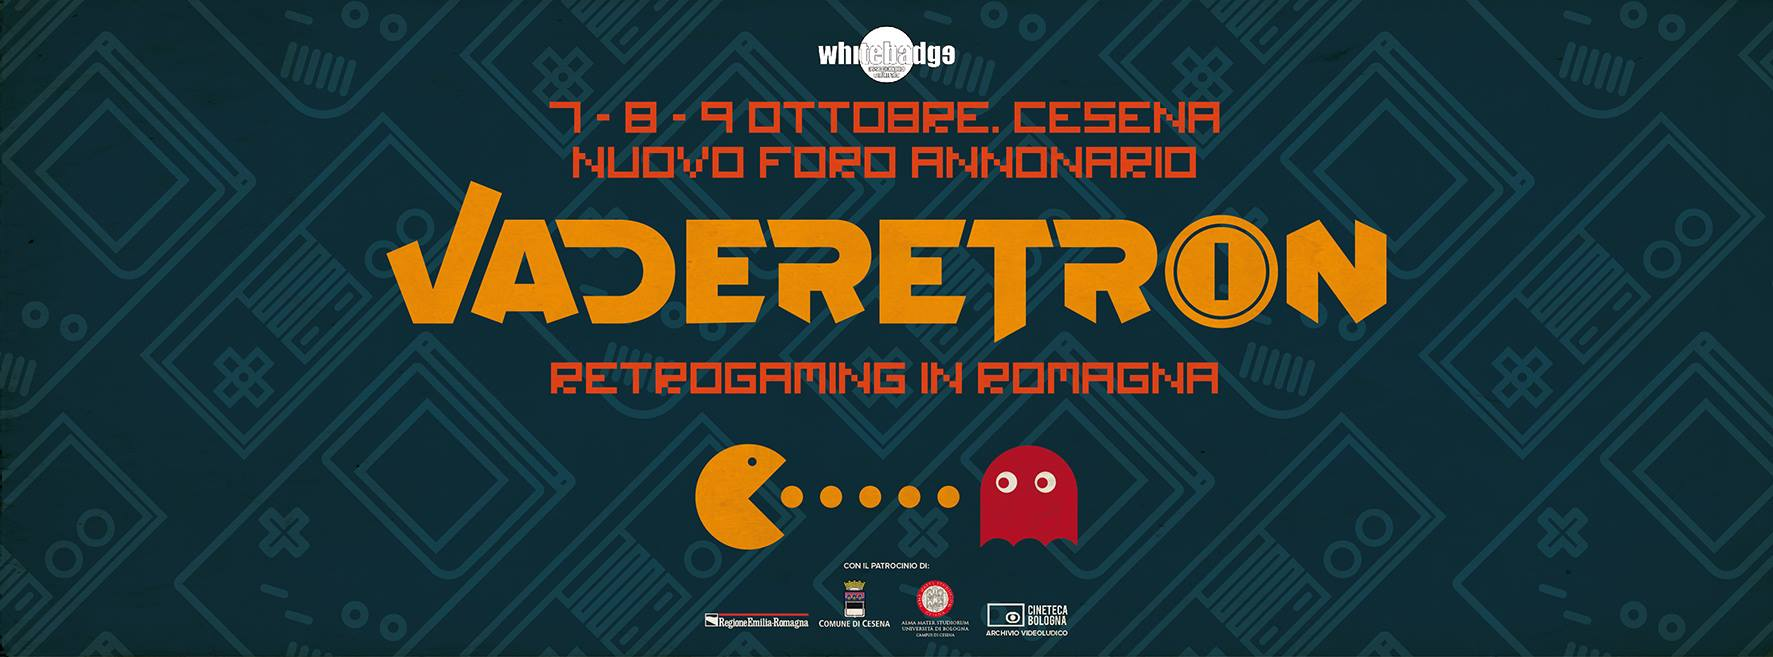 VadeRetron: Retrogaming in Romagna, il programma definitivo